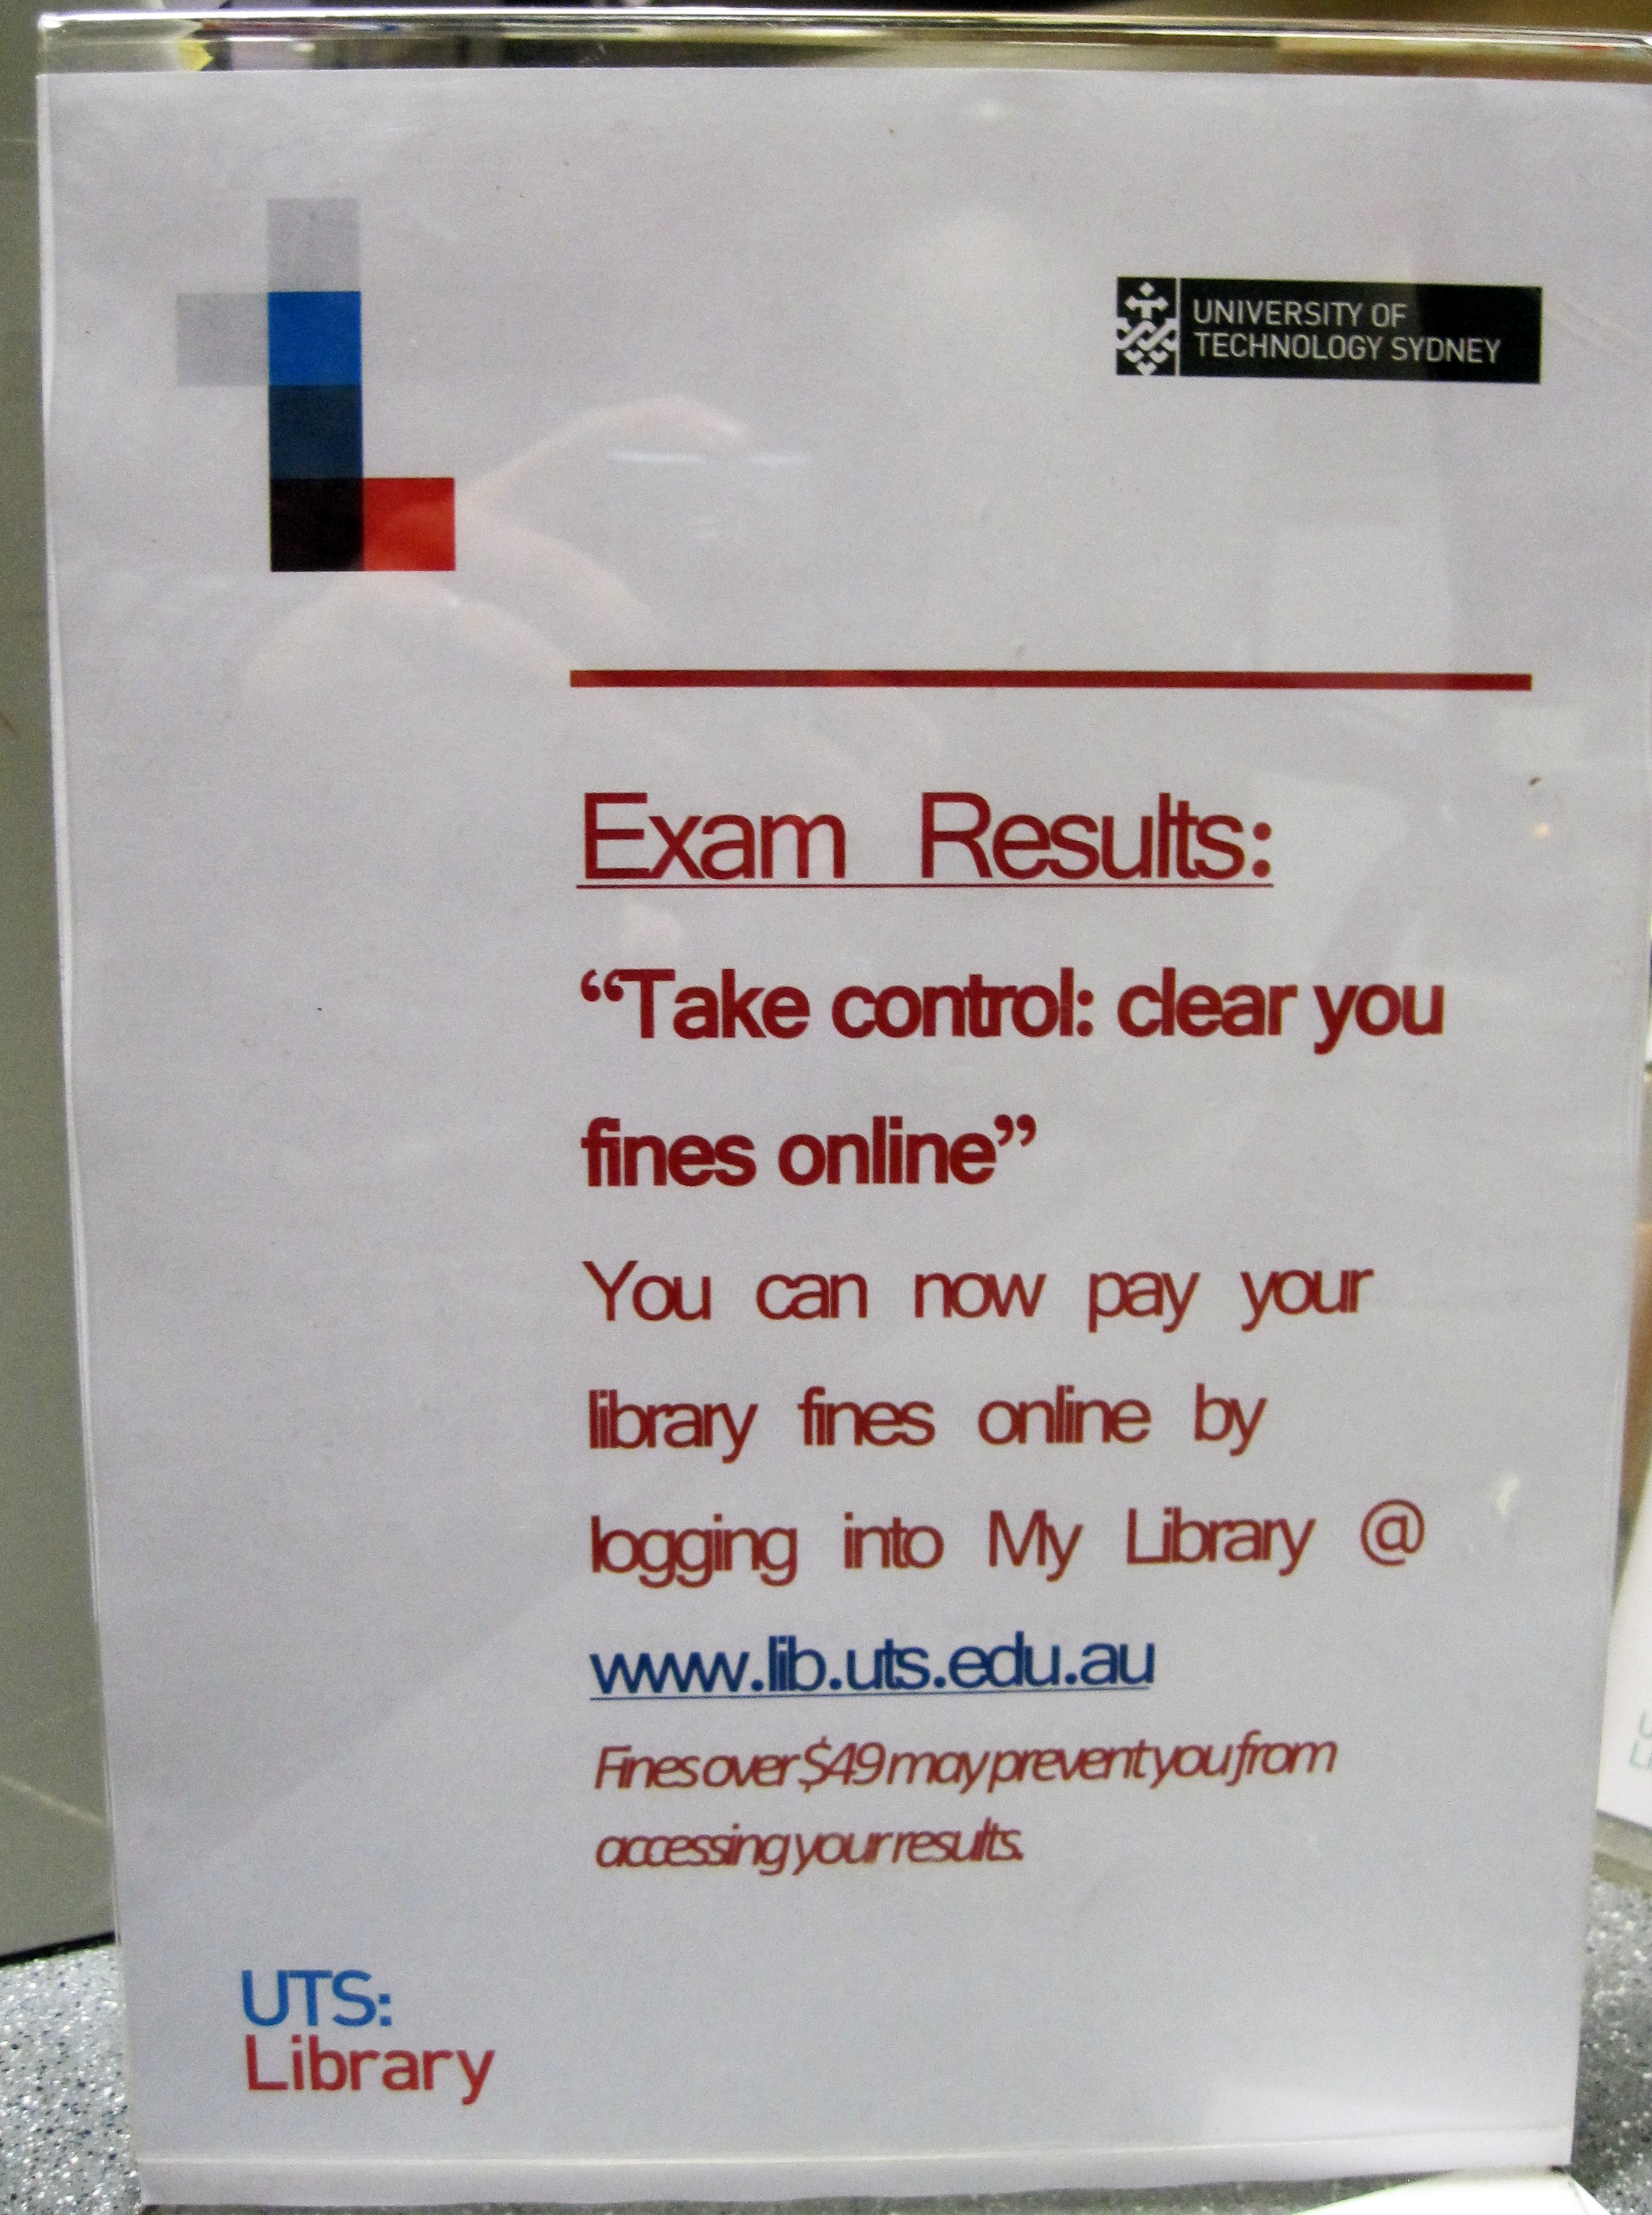 Signage by Design: A Design-Thinking Approach to Library User Experience